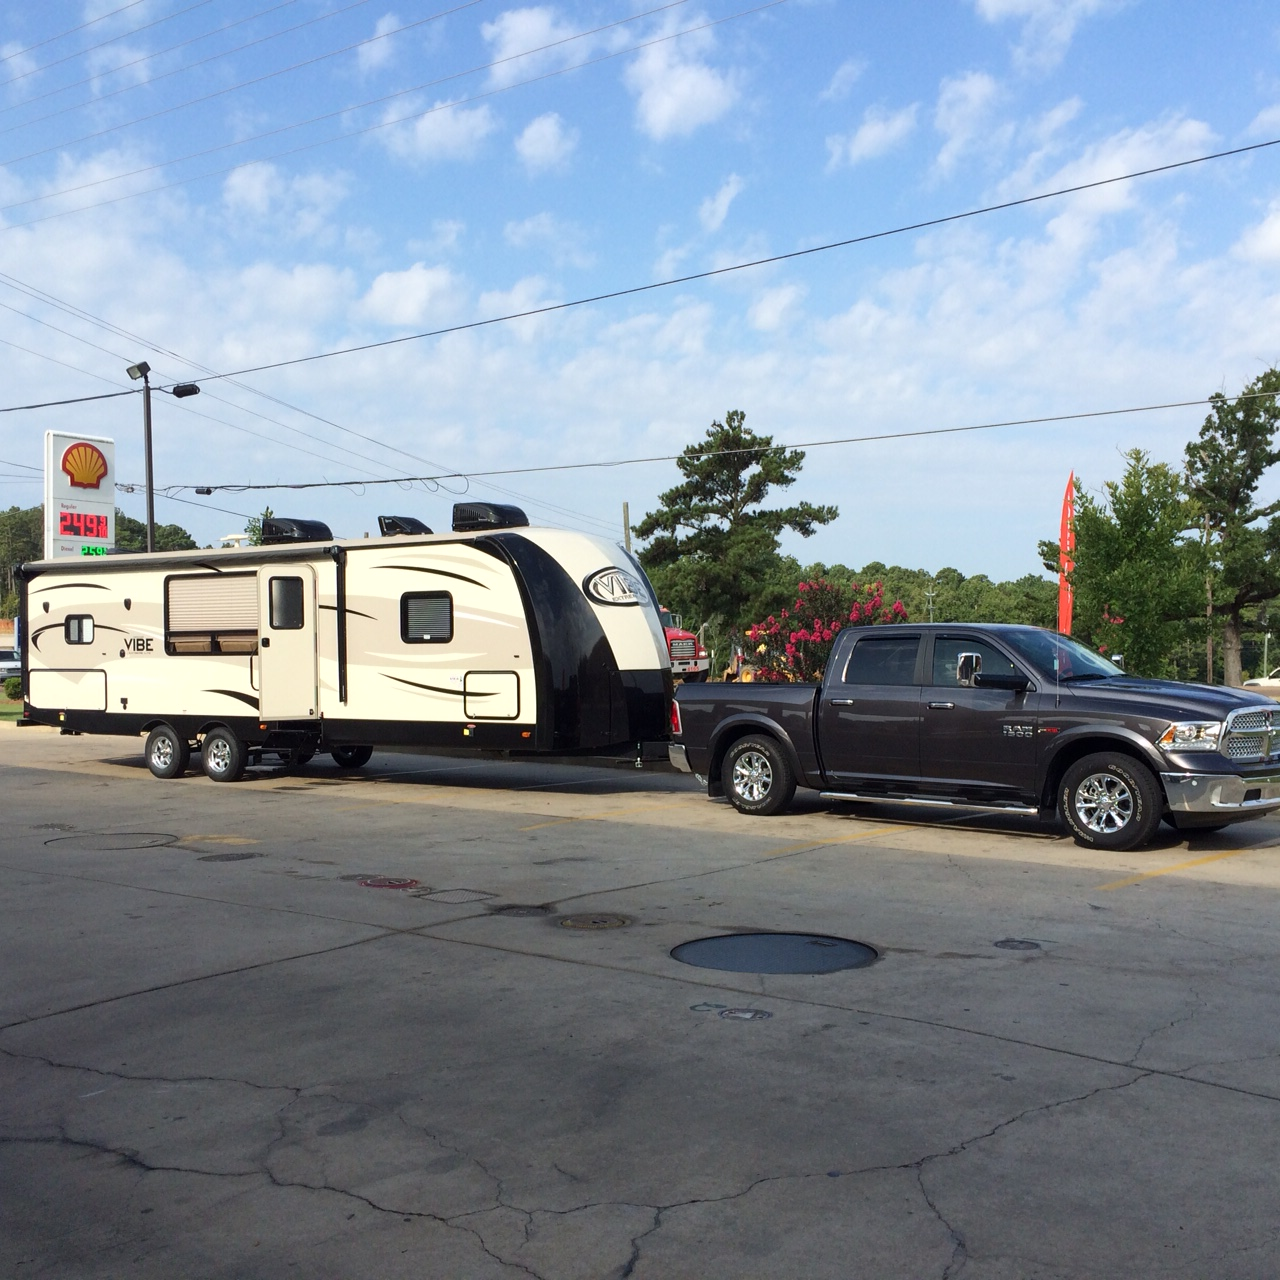 New Travel Trailers: New Vibe Travel Trailer